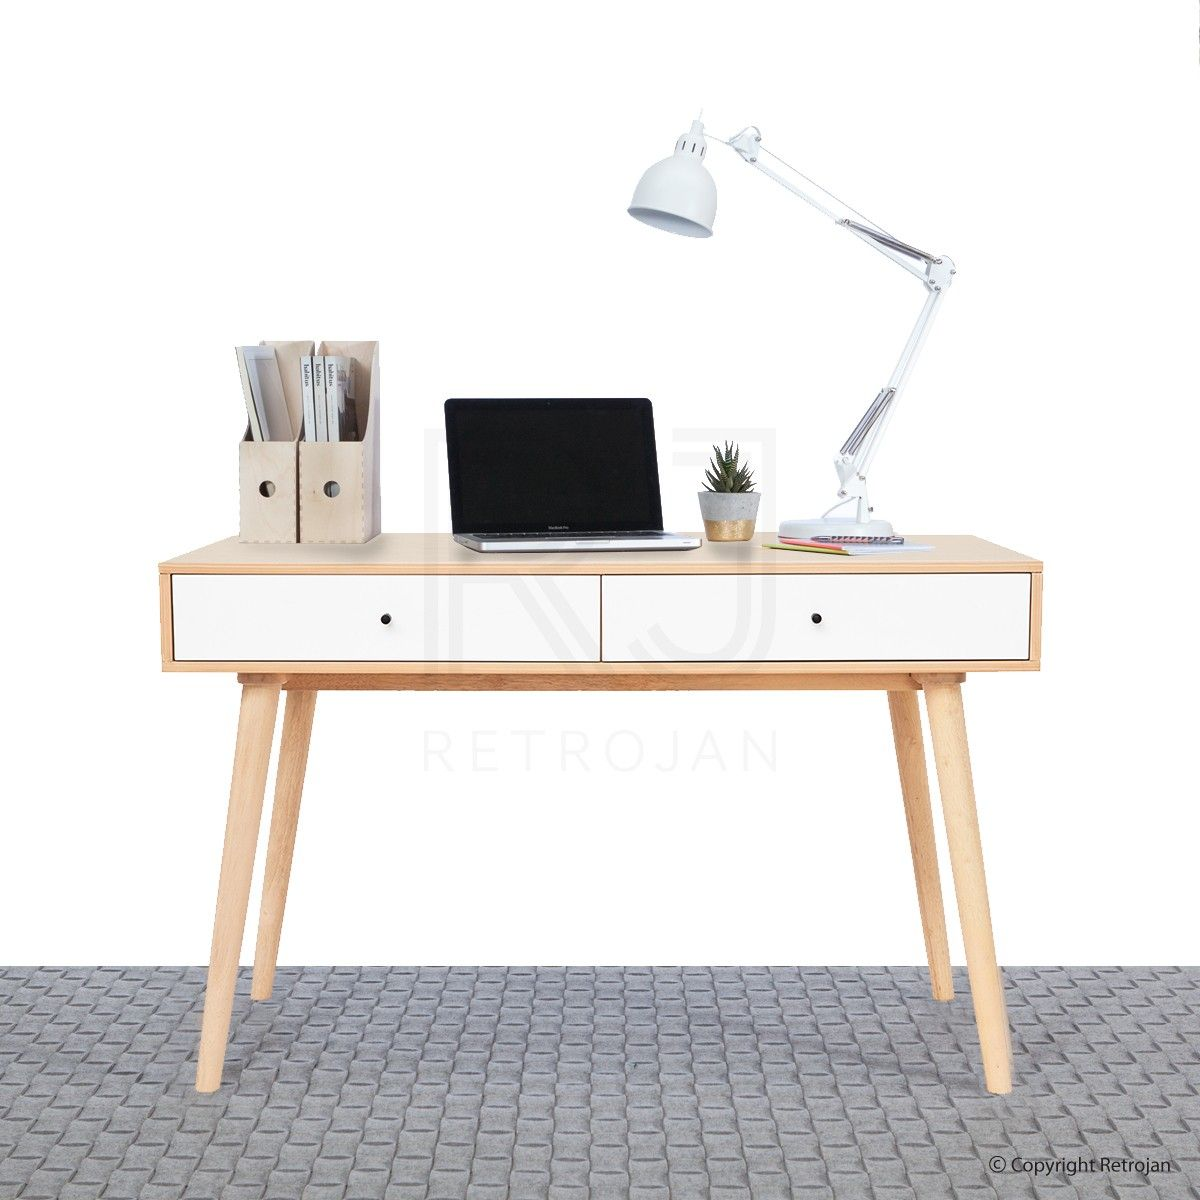 Pin By Webalys On Design Furnitures And Objects